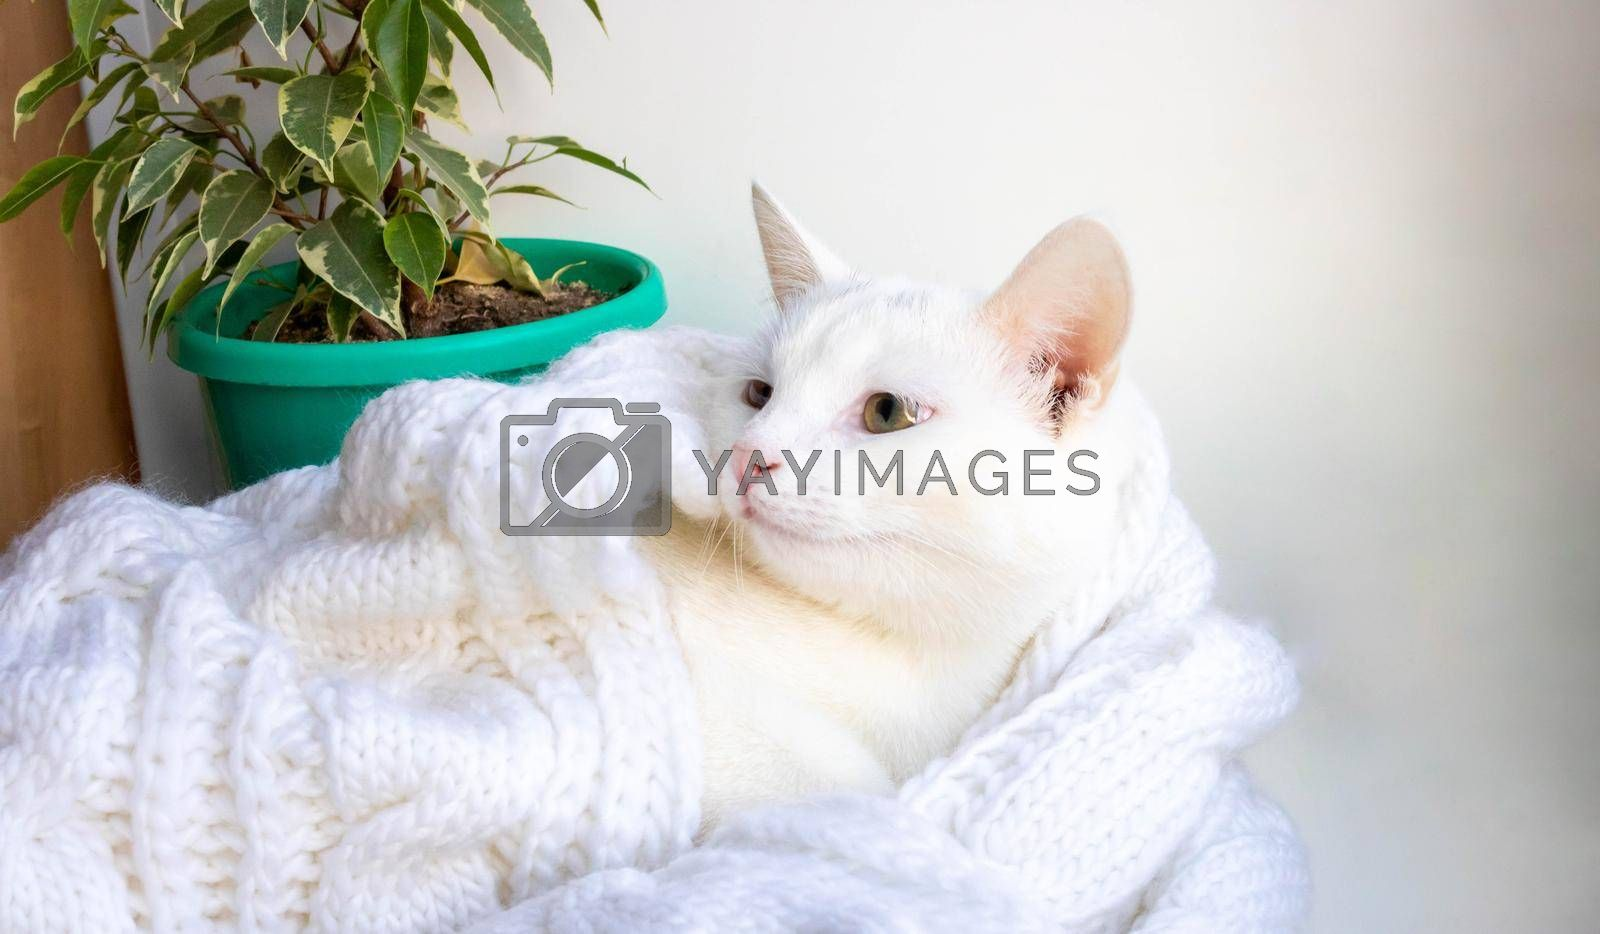 A young white cat lies on the windowsill near a ficus tree wrapped in a white knitted scarf.